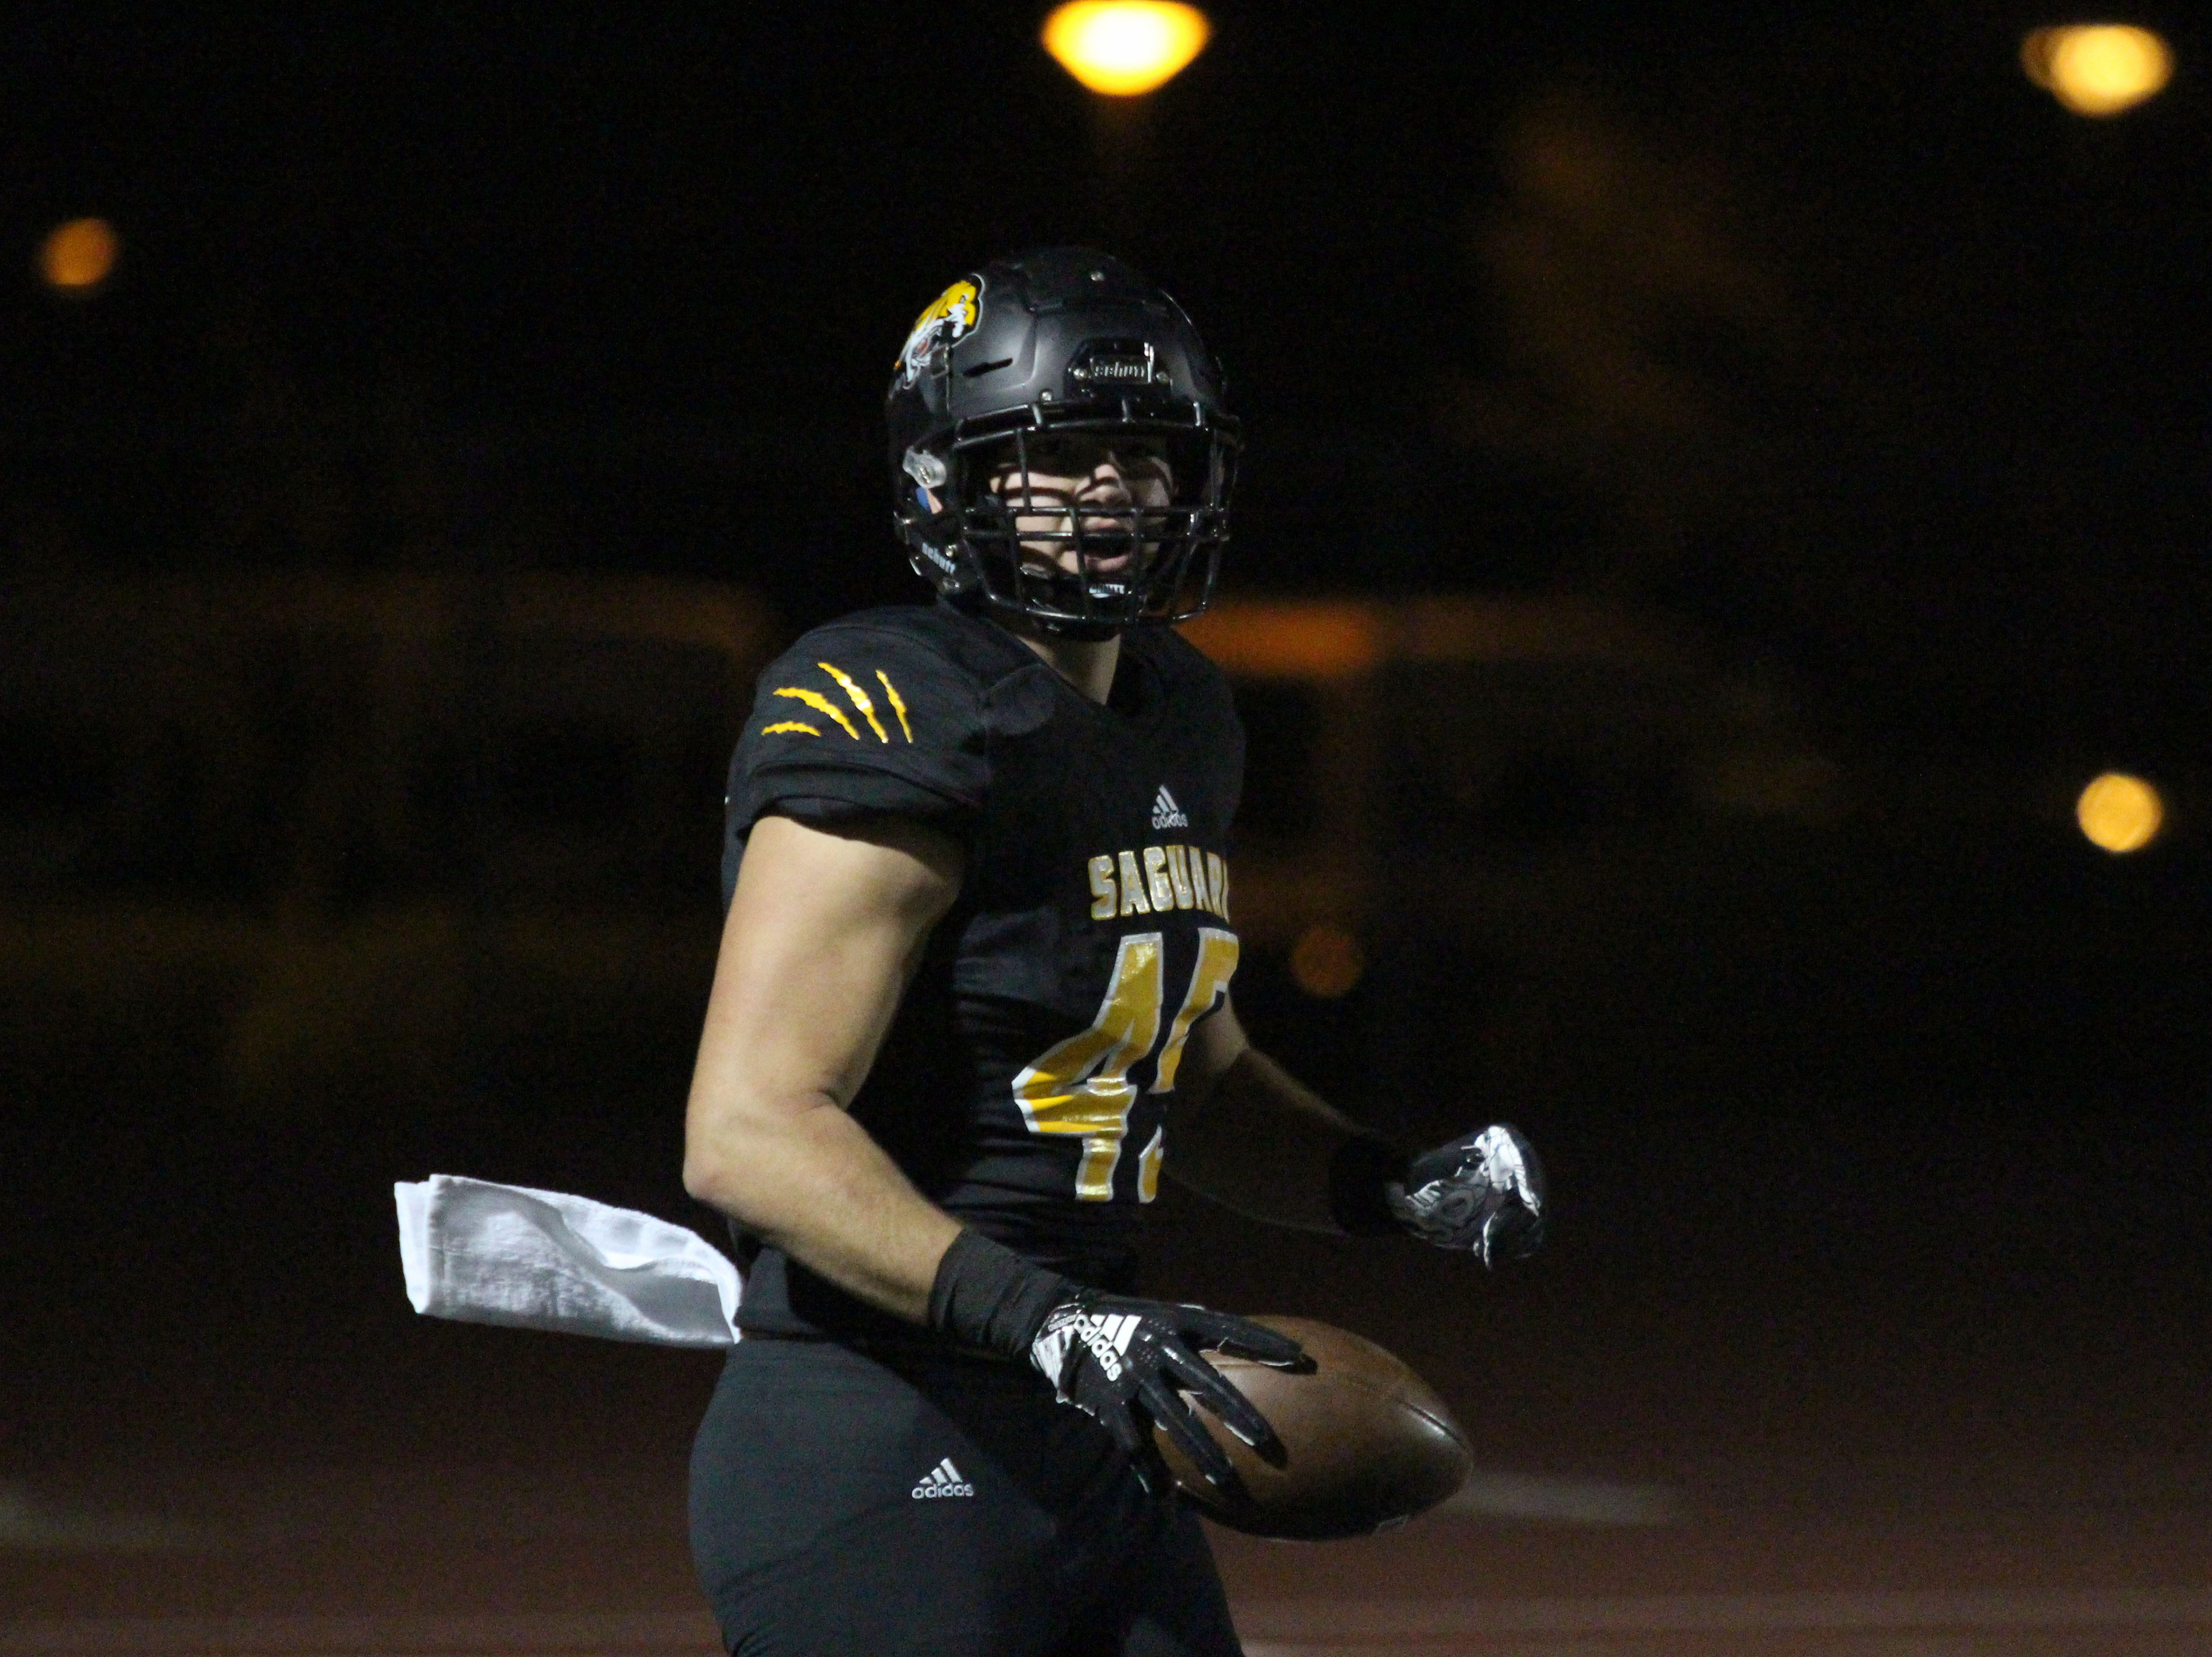 Saguaro's Hogan Hatten after scoring a touchdown against Desert Edge on Friday night at Coronado High School on Nov. 16, 2018.